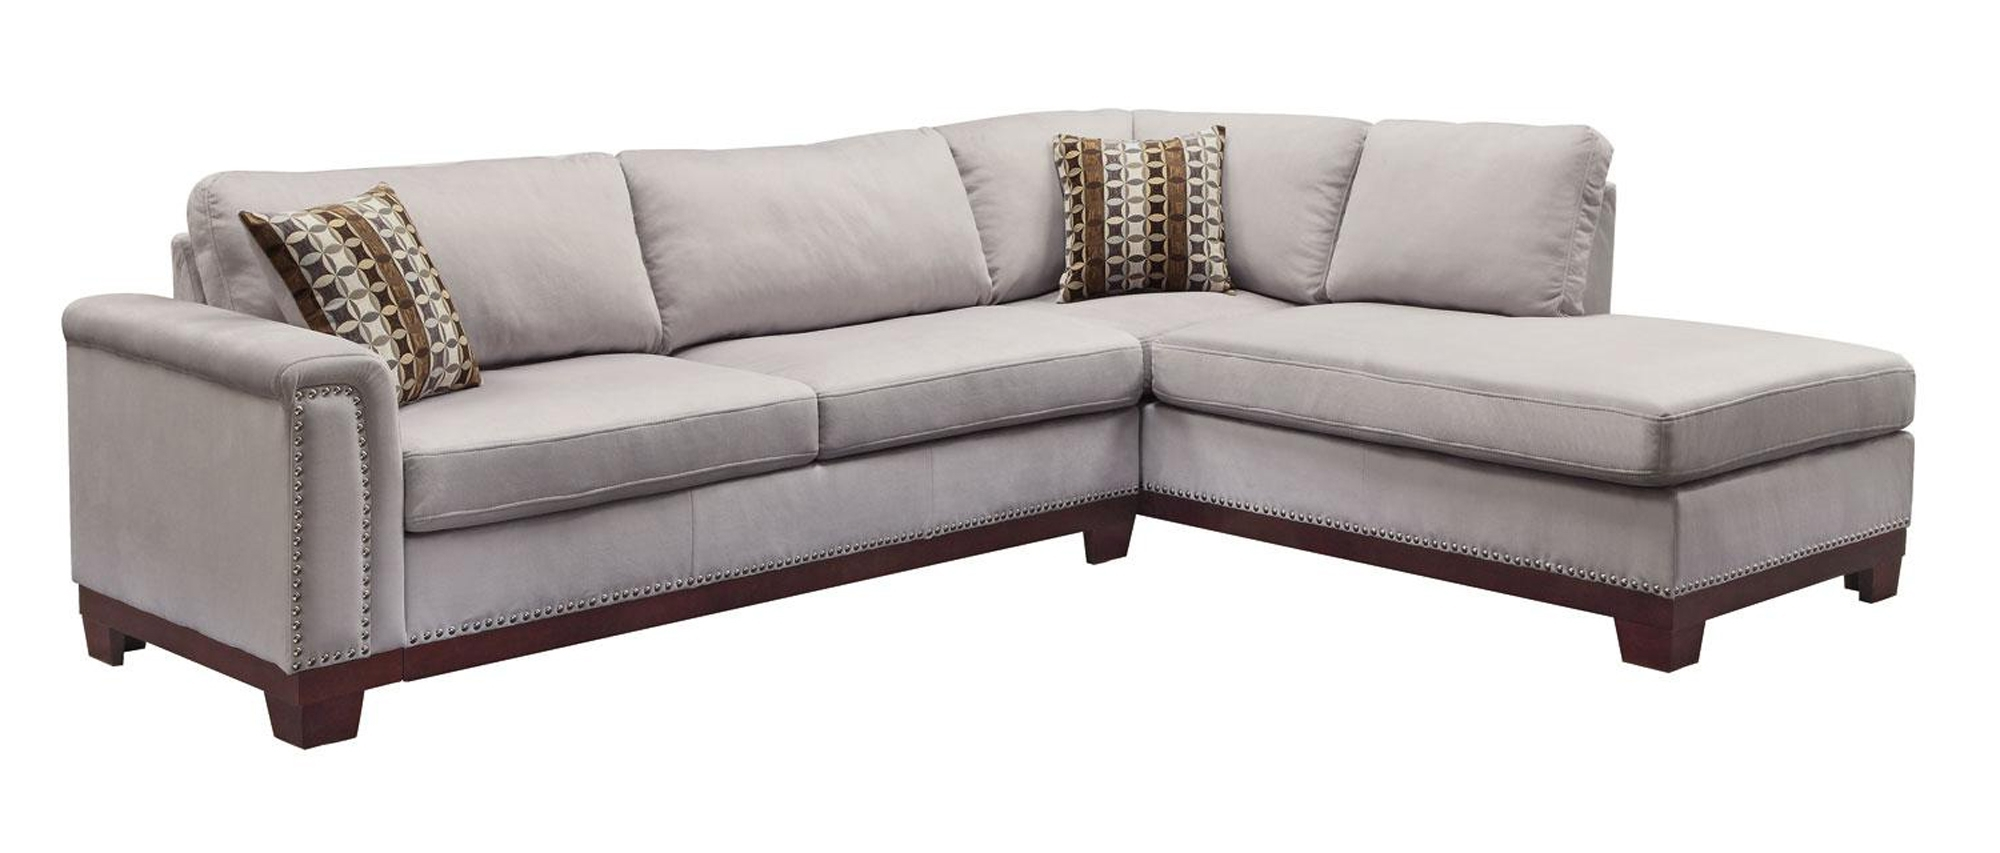 Sectional Sofas With Nailhead Trim in Popular $1051.92 Mason Sectional Sofa With Nailhead Trim And Accent